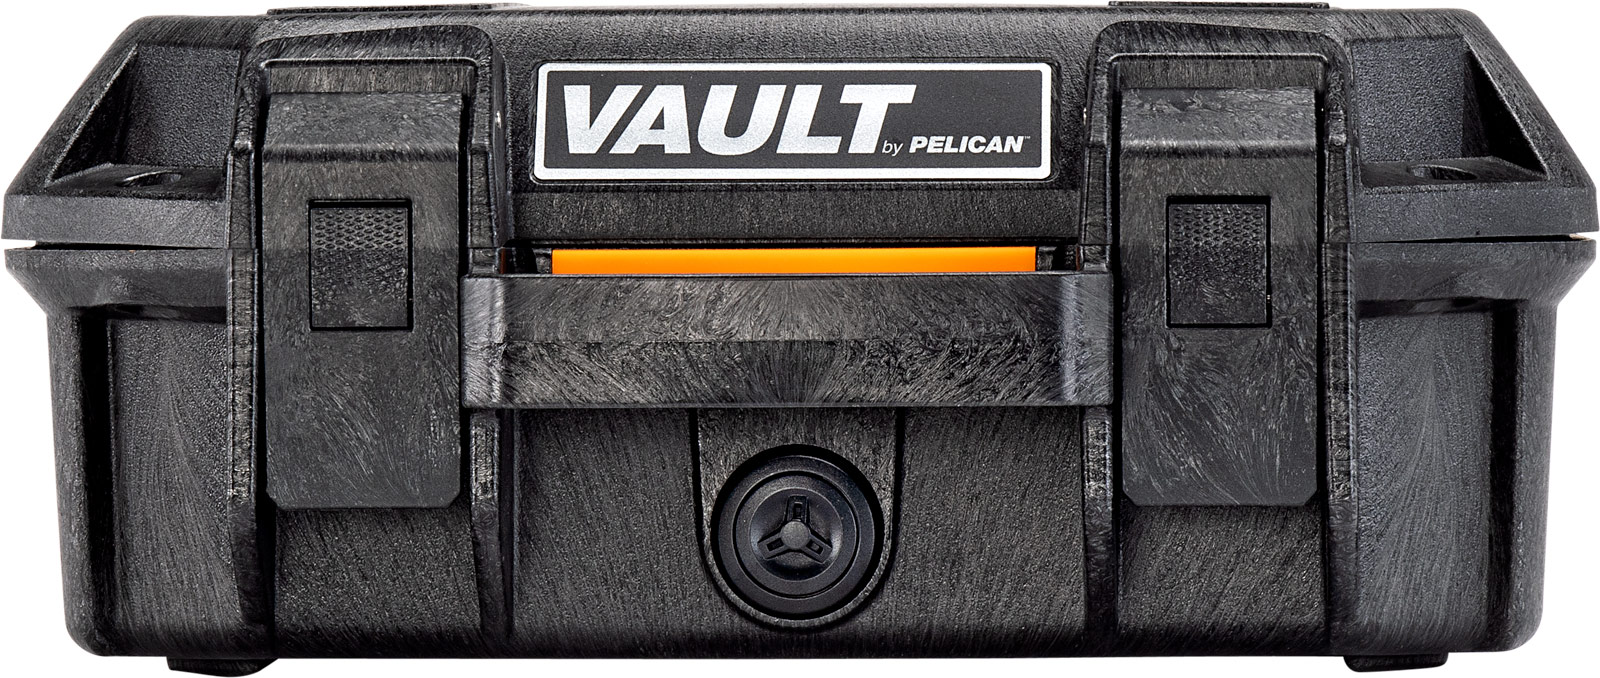 buy pelican vault v100 shop gun case